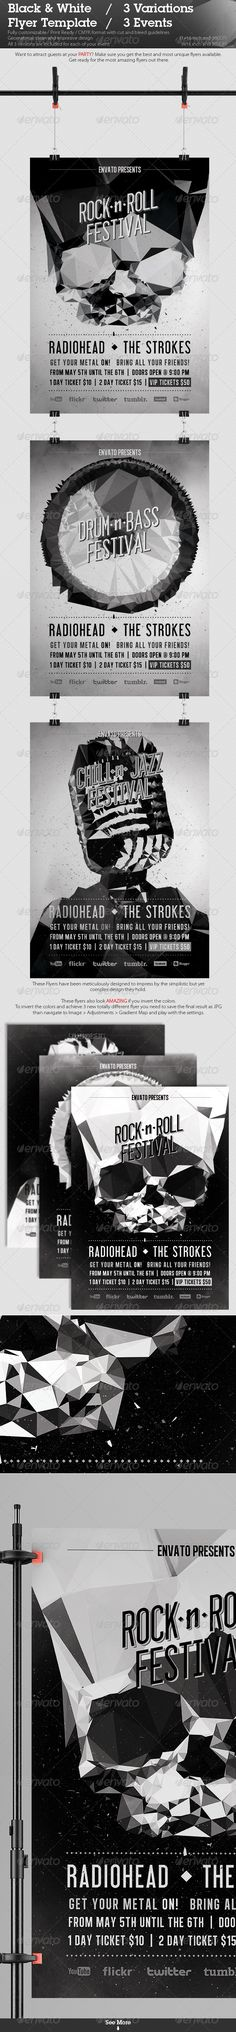 Bowling Extravaganza Flyer Template Flyer template and Print - black and white flyer template